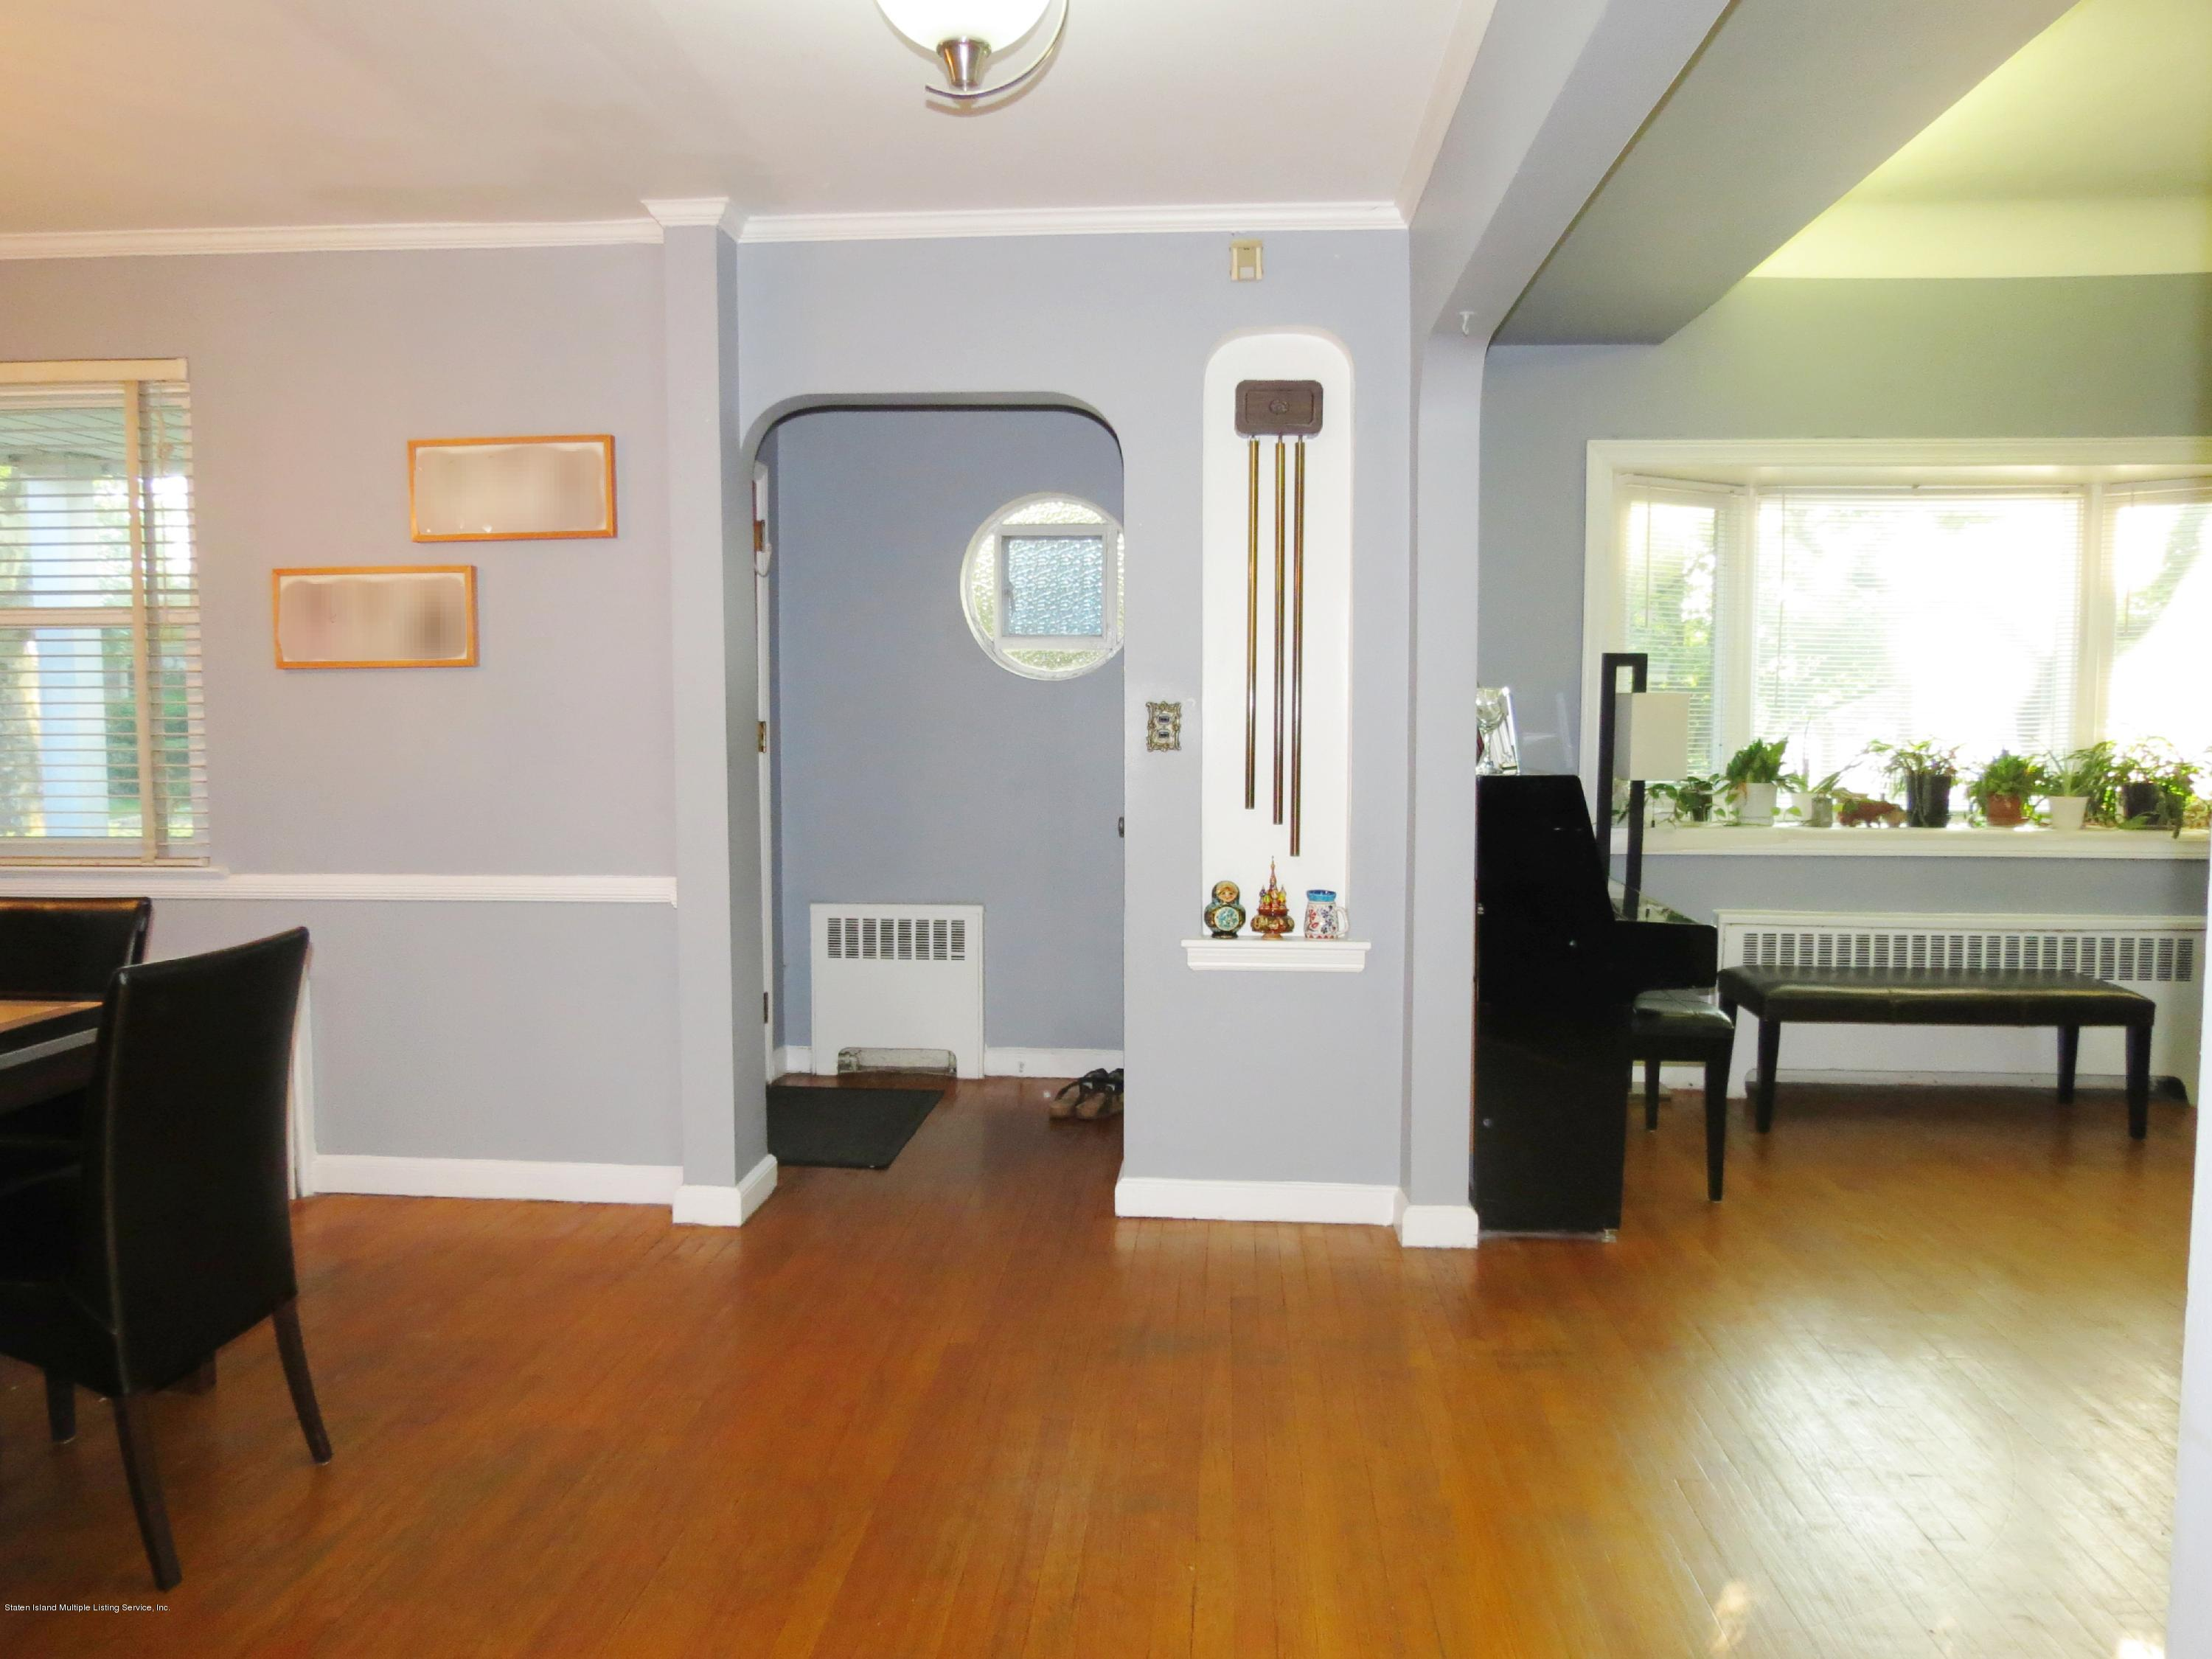 Single Family - Detached 8003 215th St   Queens, NY 11427, MLS-1131180-10